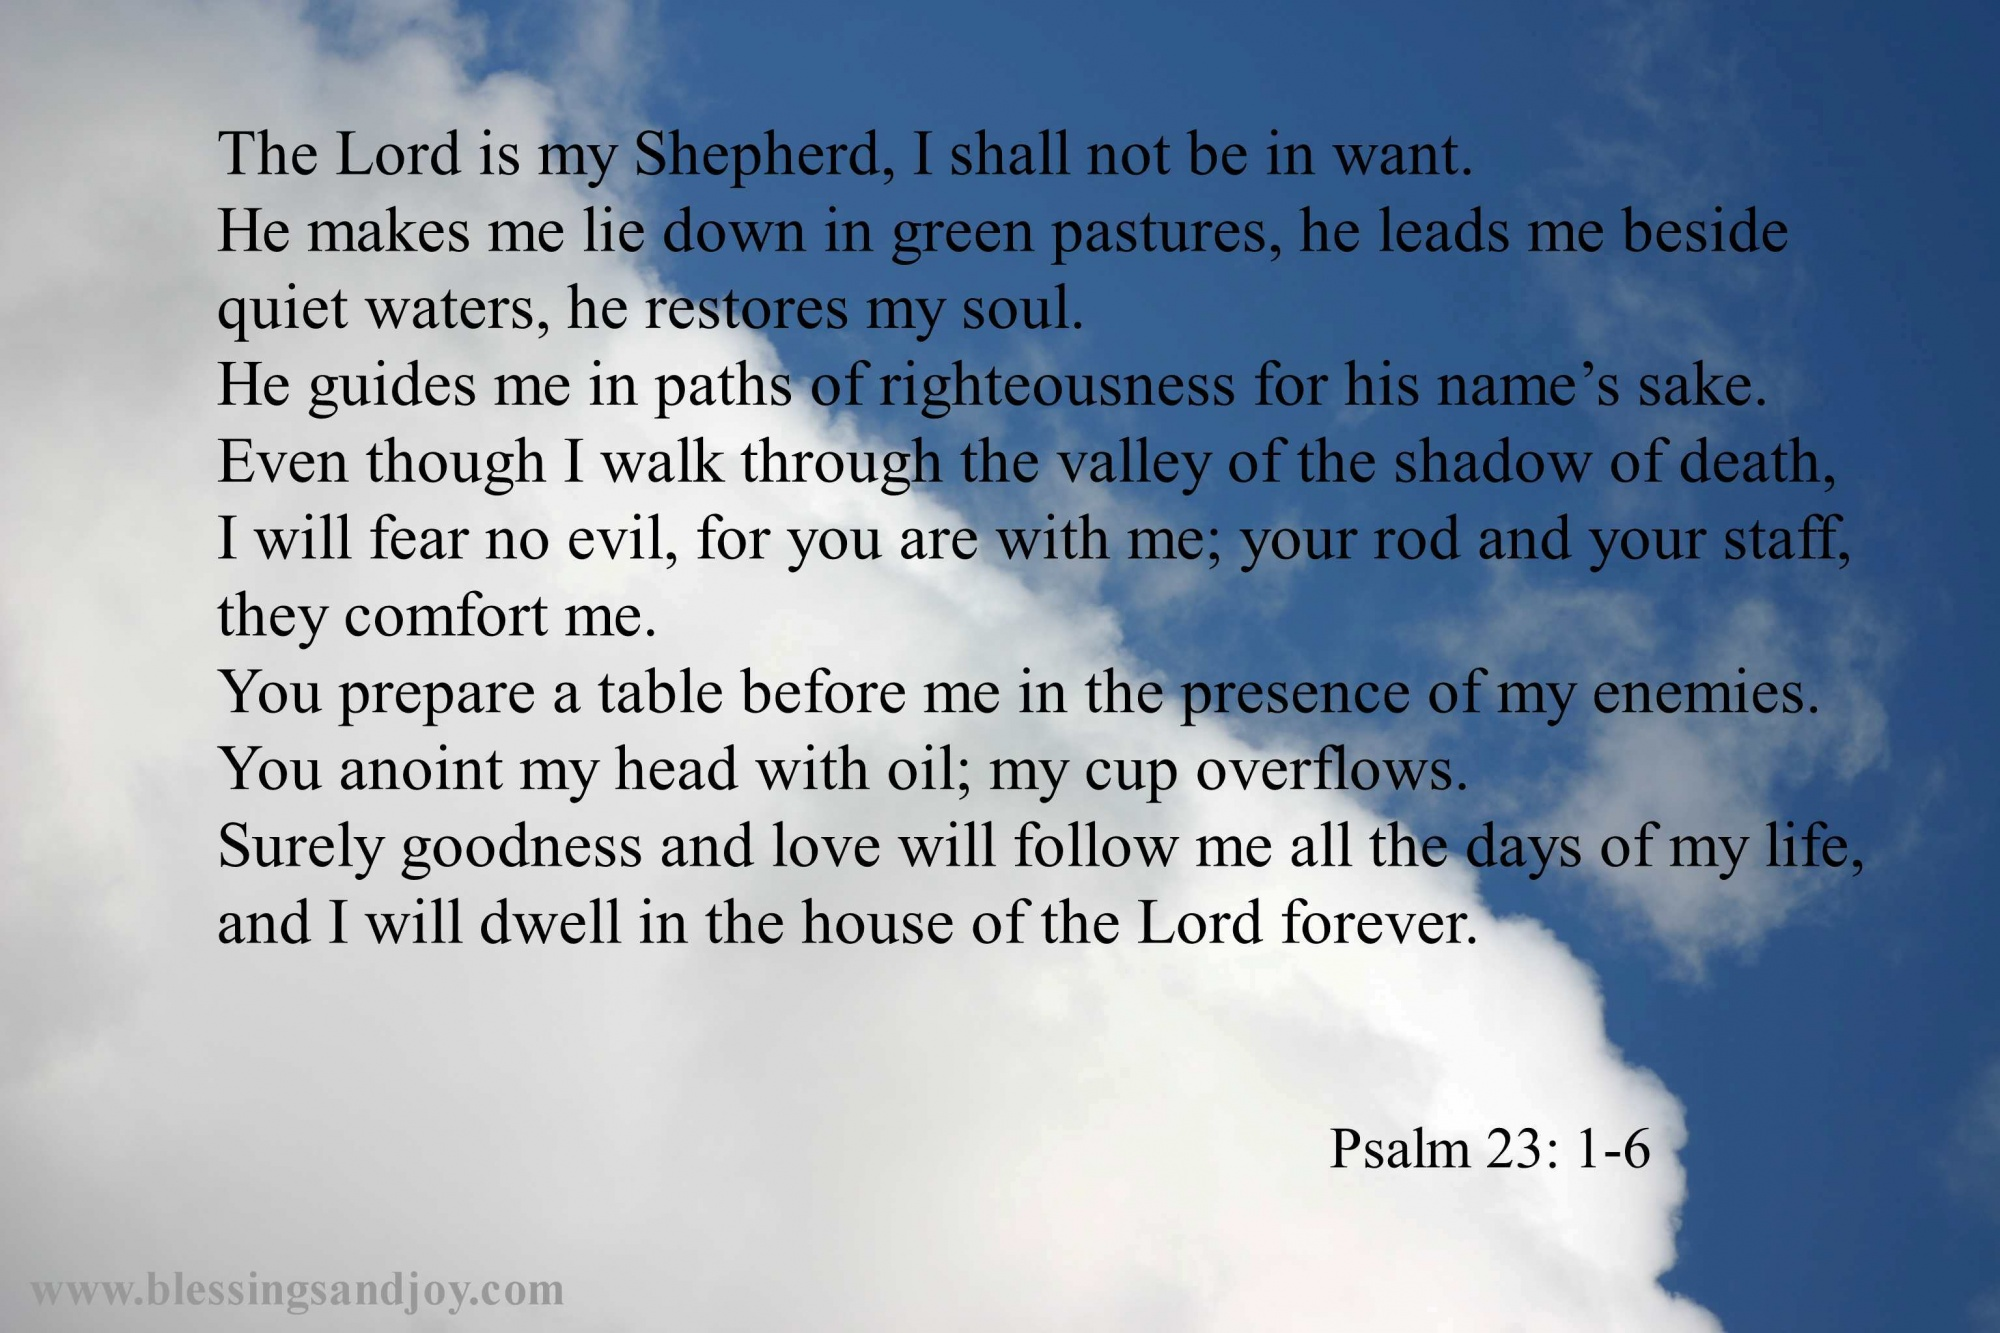 COMFORT_Psalm_23_1_to_6_The_Lord_is_my_Shepherd_ch-38